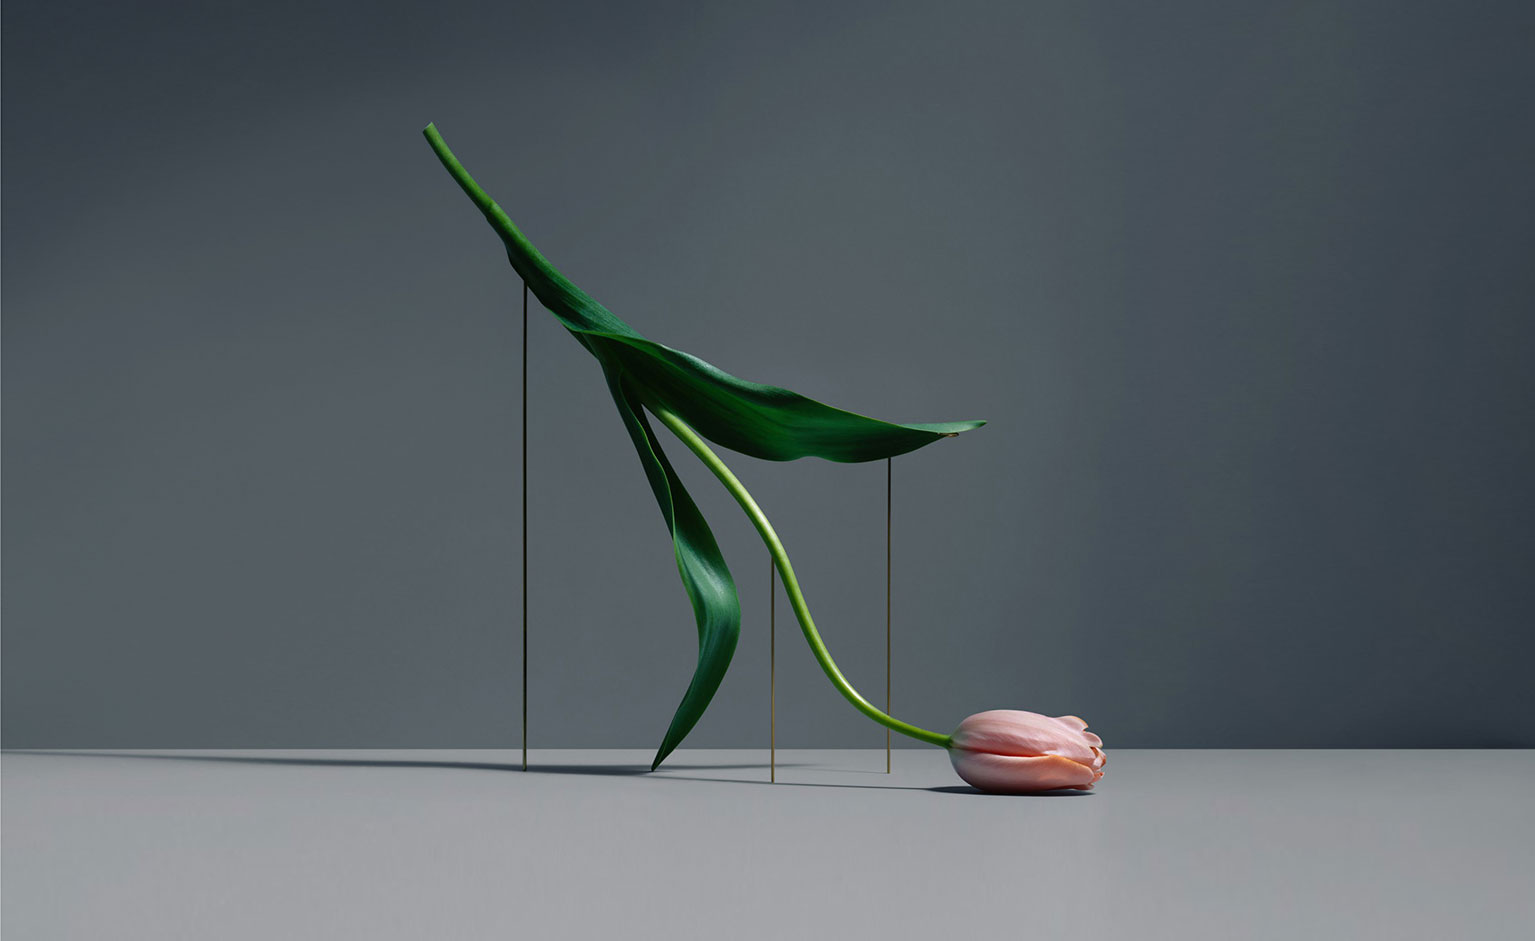 Artists that inspire us – Carl Kleiner